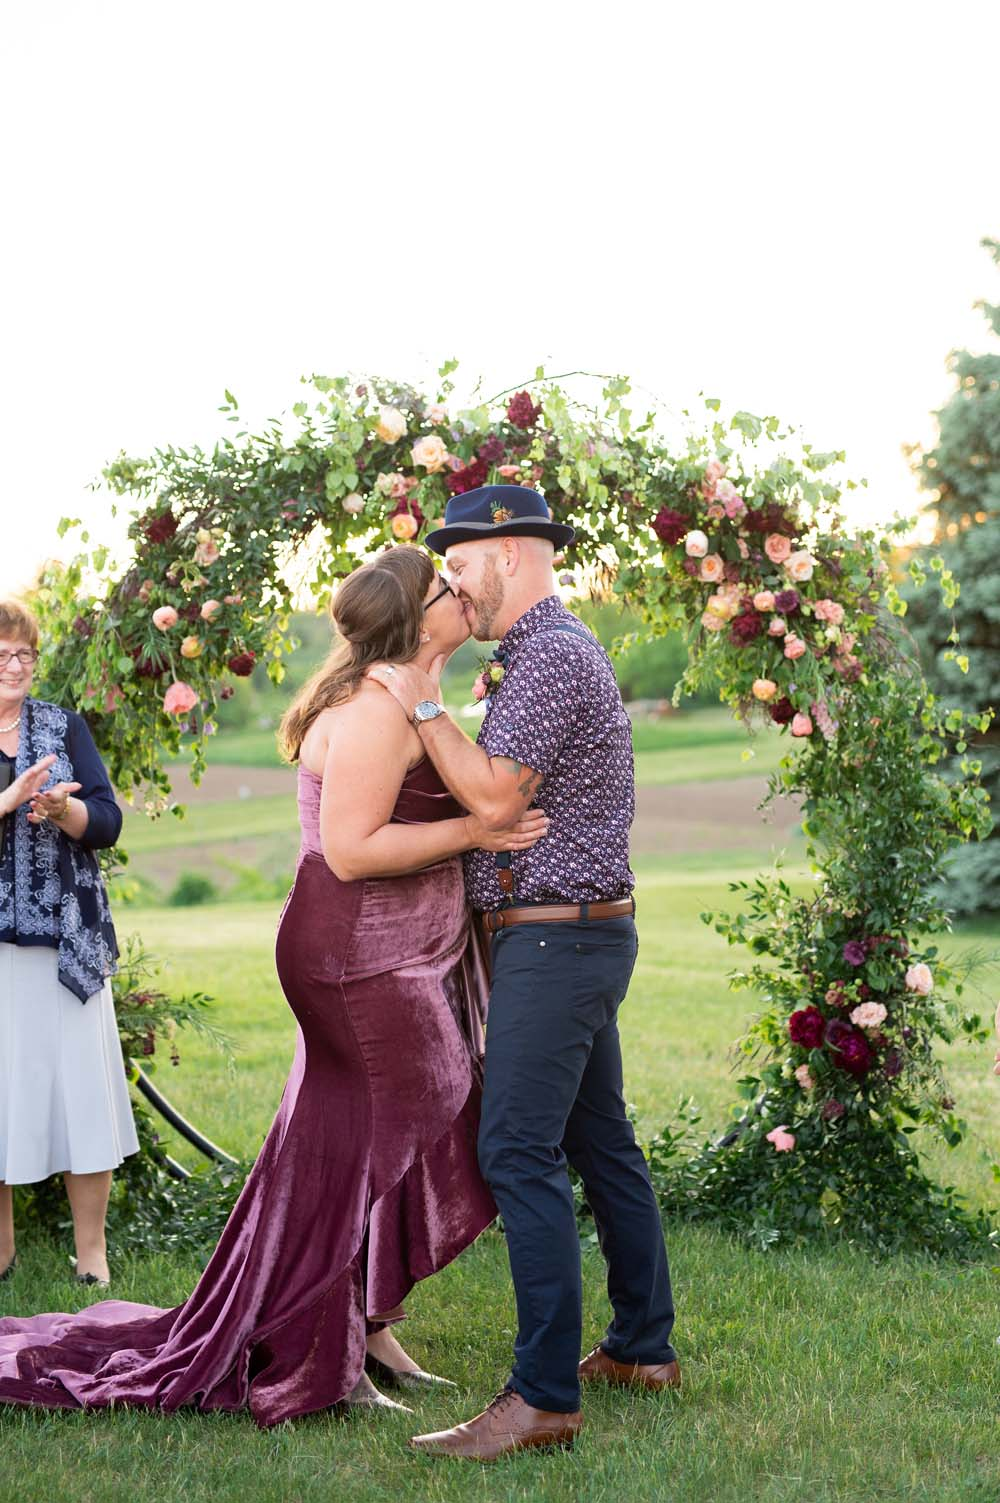 A Quirky Non-Traditional Wedding in Kitchener, Ontario - Couple kiss